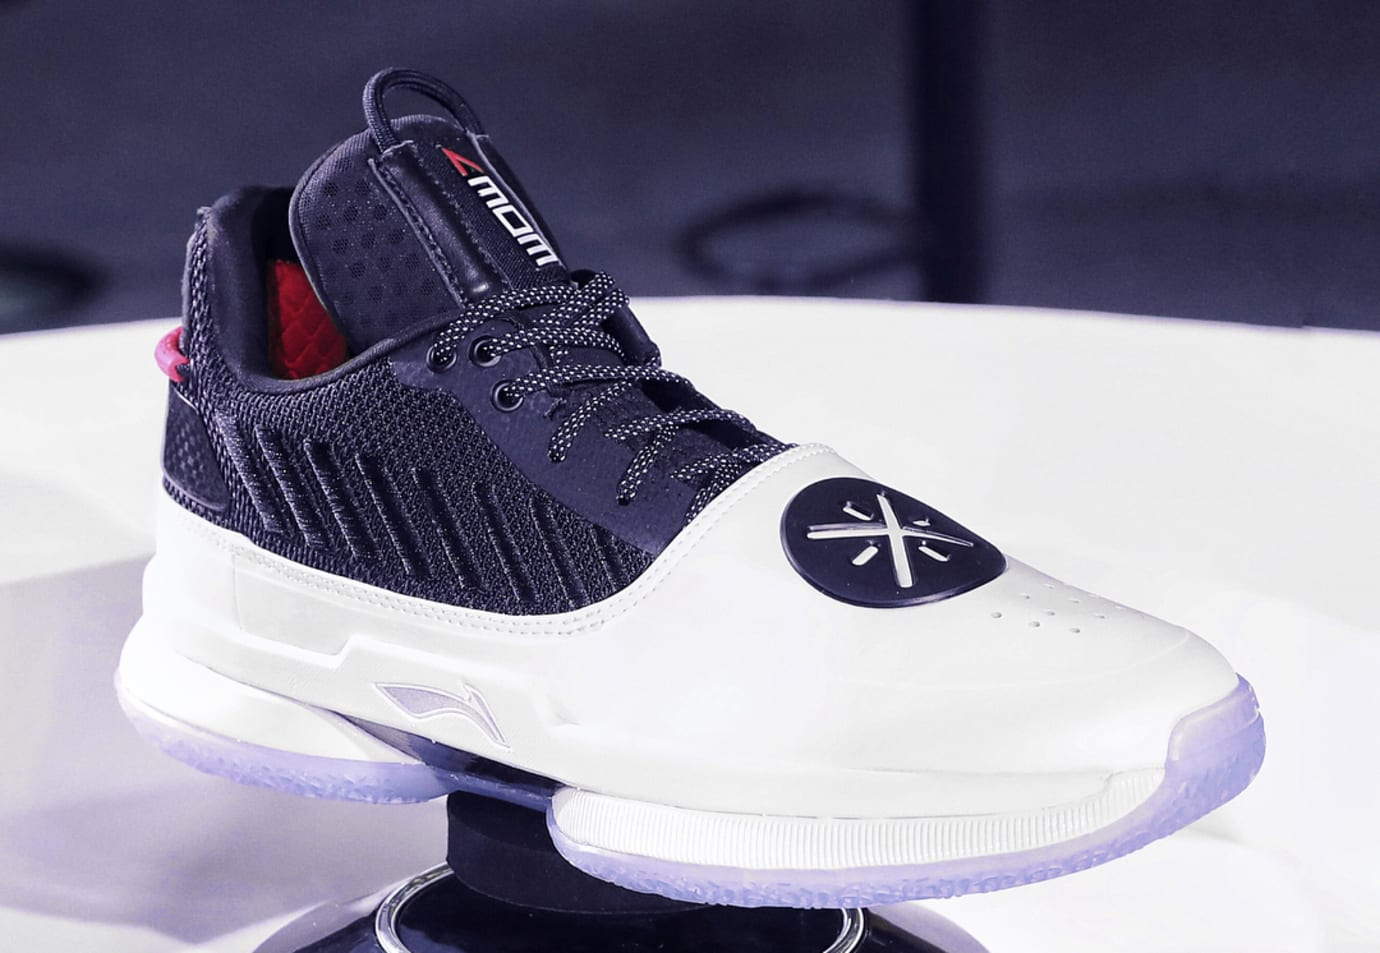 Li-Ning Way of Wade 7 (Front)